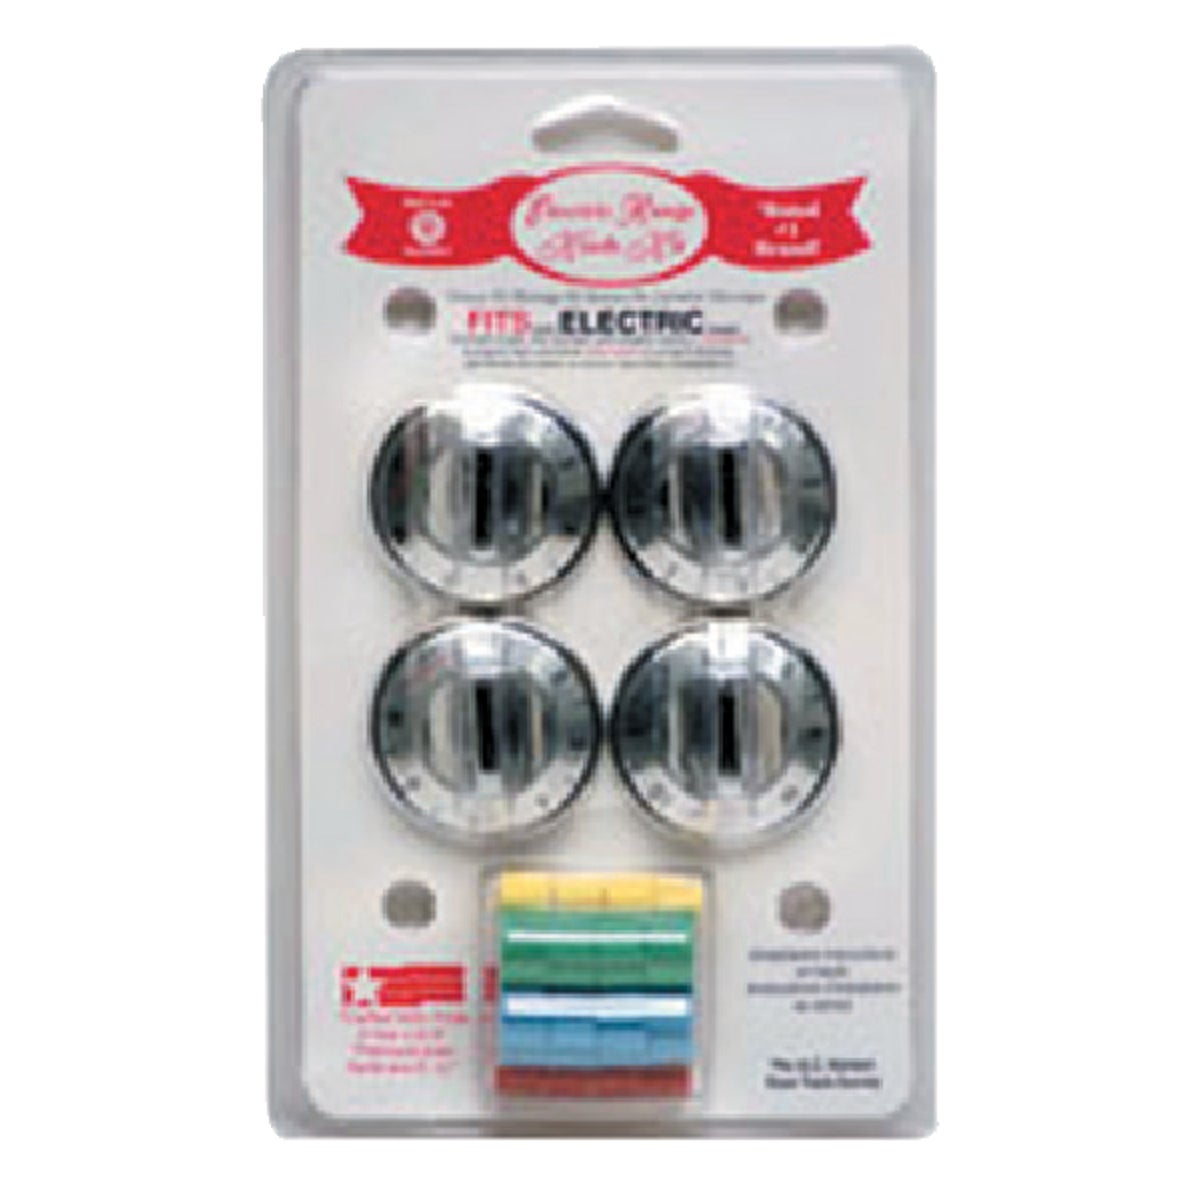 CHROME ELECTRIC KNOB KIT - 8124 by Range Kleen Mfg Inc